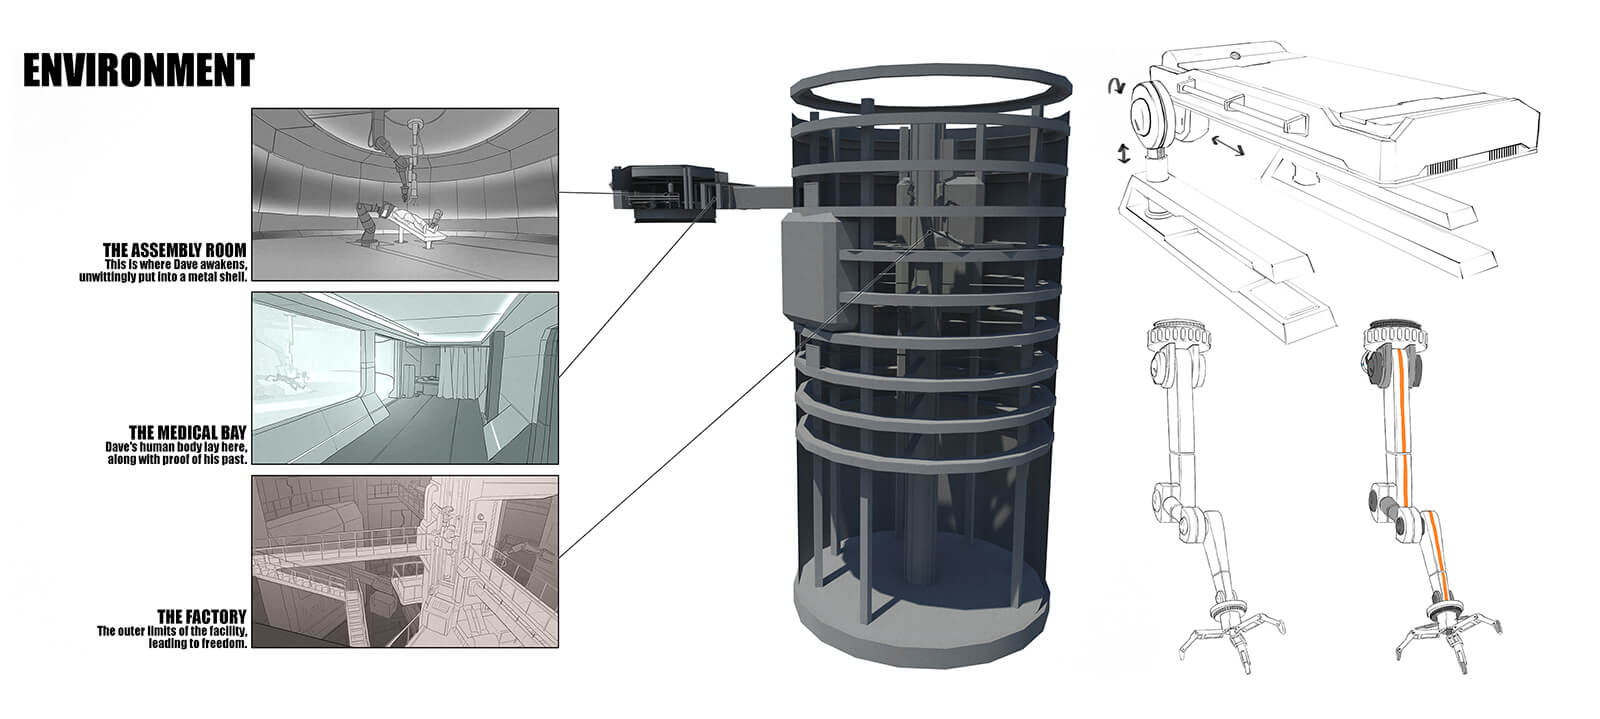 Environmental sketches for a cylindrical industrial facility.